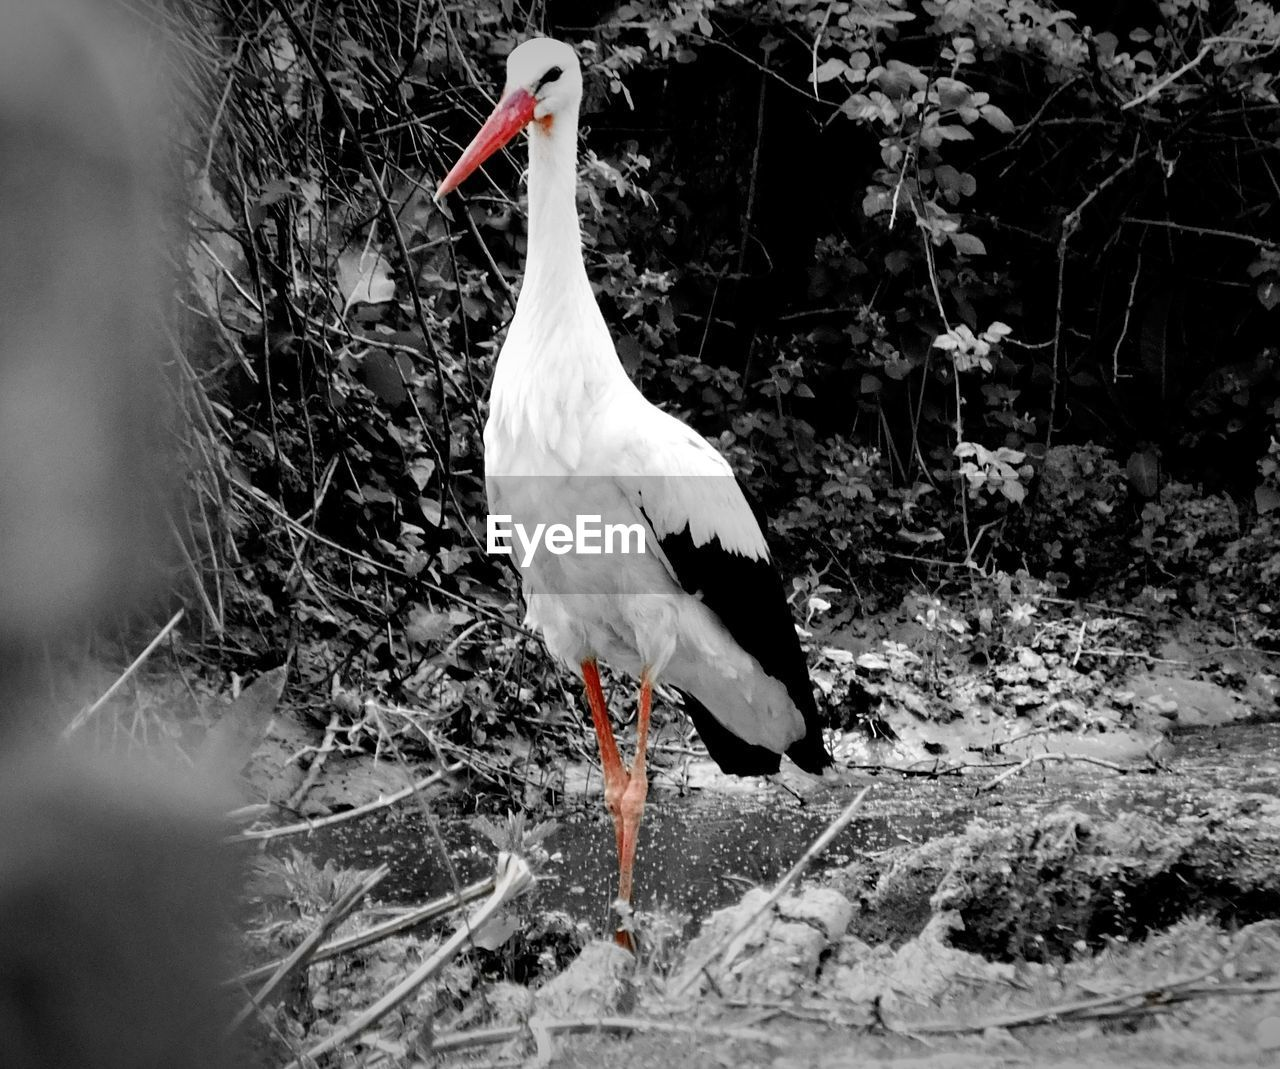 animal themes, animals in the wild, one animal, bird, animal wildlife, nature, day, no people, outdoors, white stork, water, beauty in nature